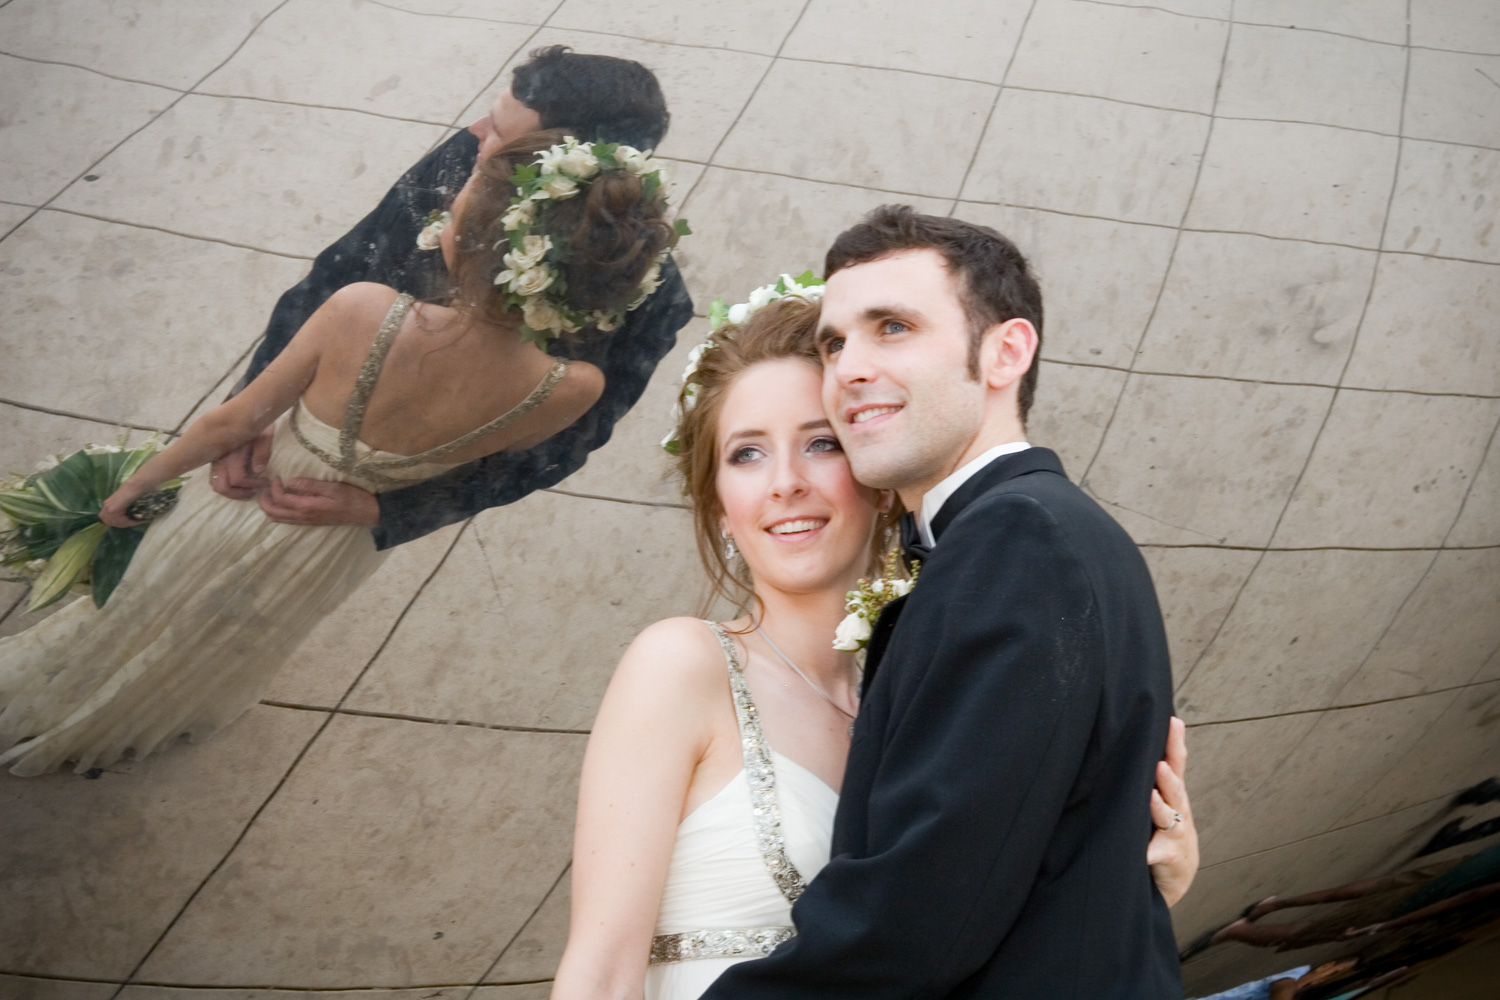 Chicago Wedding Photographers | We Care About Our Customers